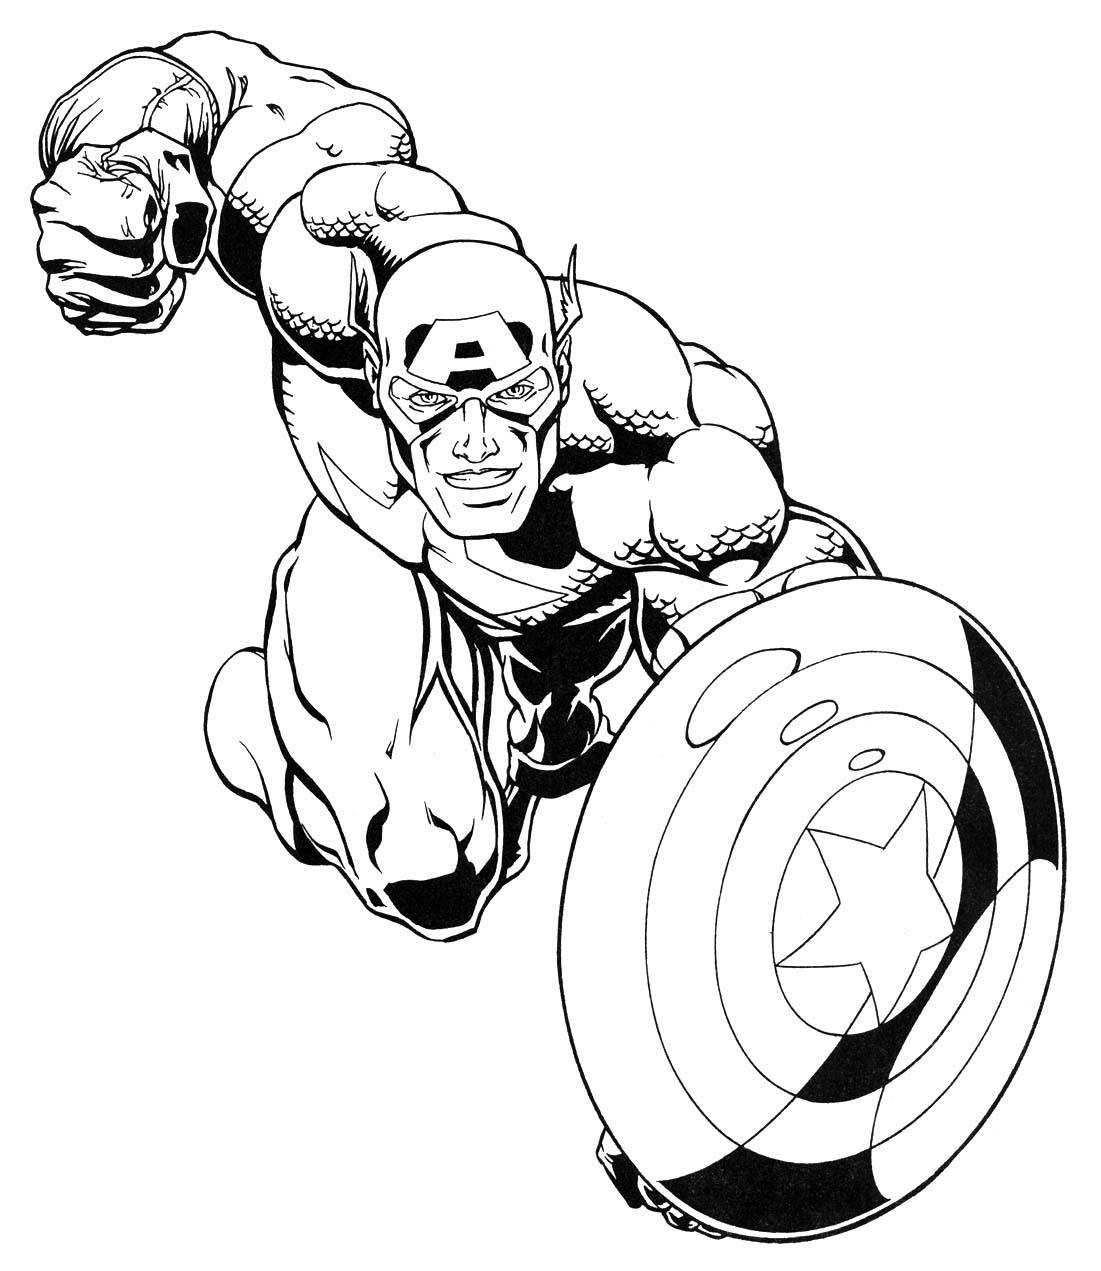 coloring pages for kids super heros superheroes coloring pages download and print for free super coloring heros for kids pages